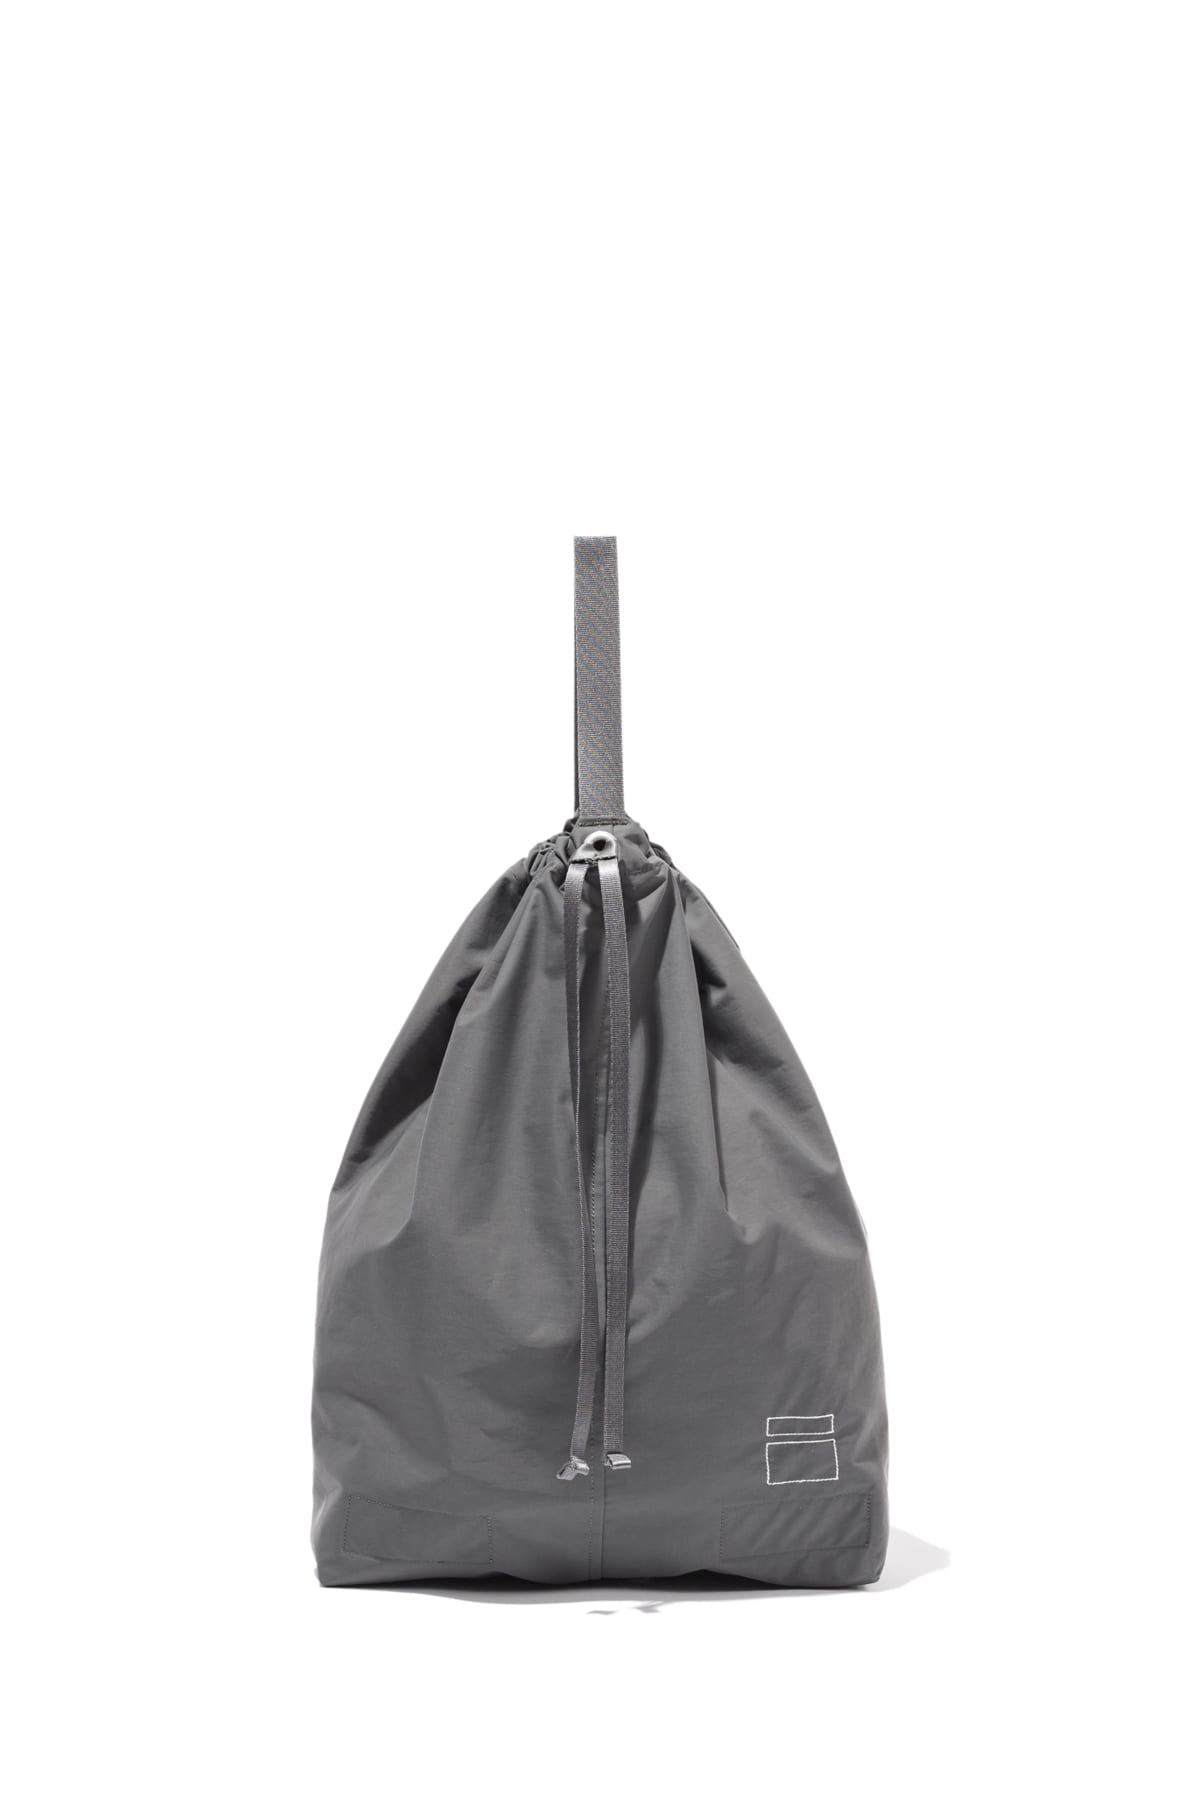 Blankof : BLG 01 6L Fisherman Bag 6 (Olive Grey)